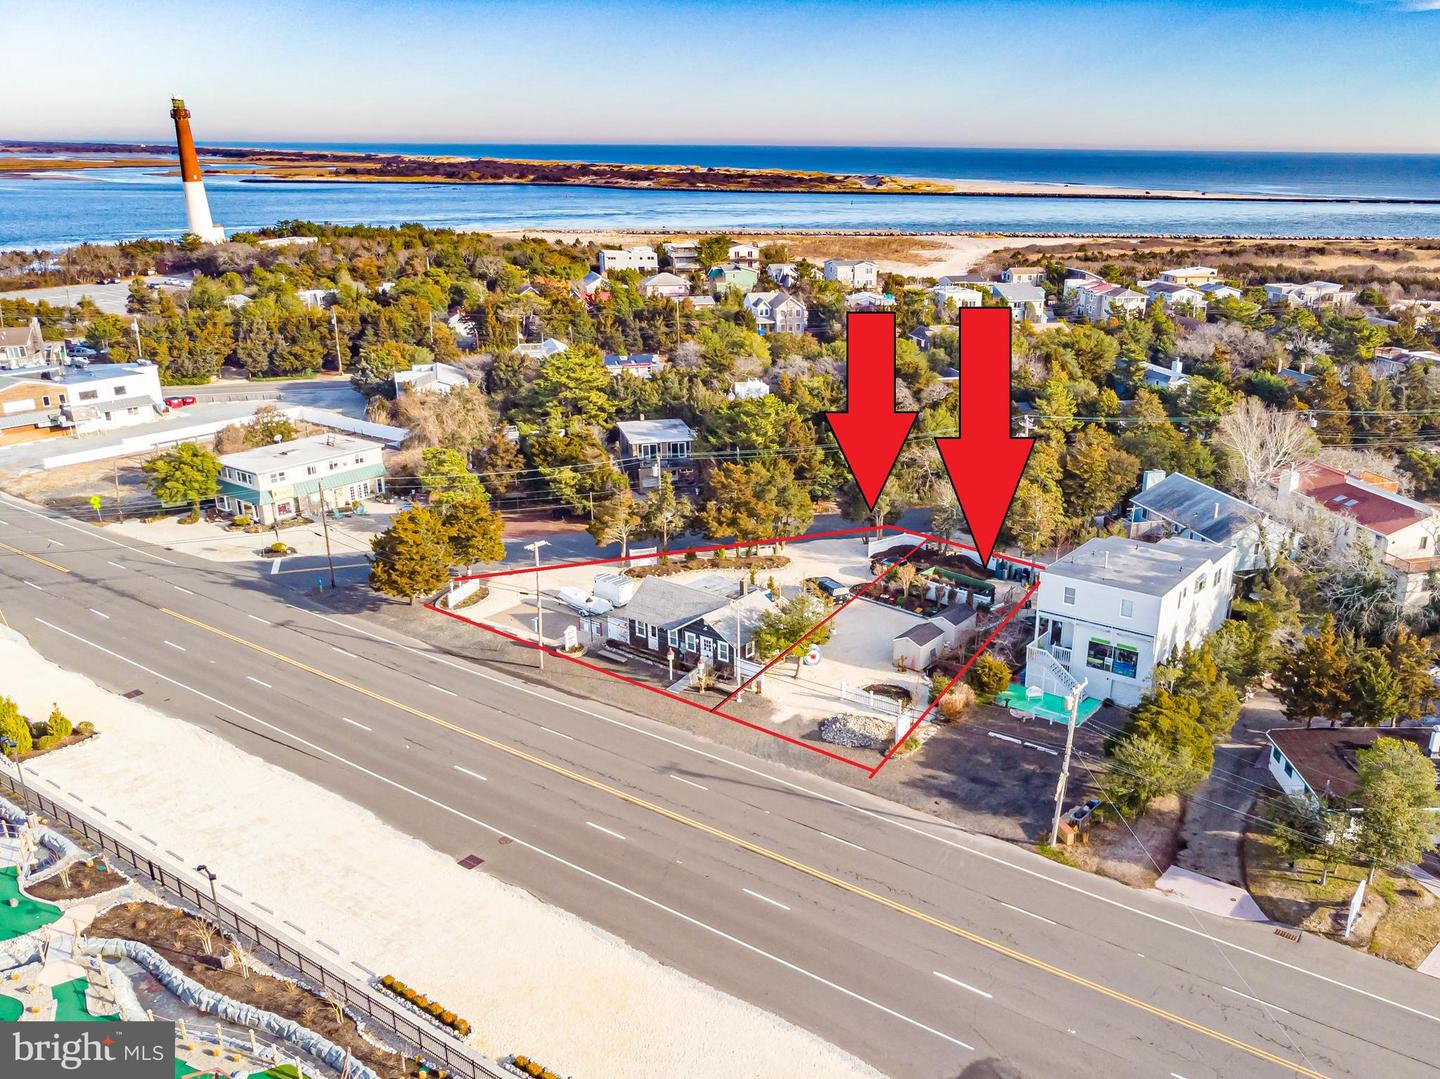 Land for Sale at Barnegat Light, New Jersey 08006 United States